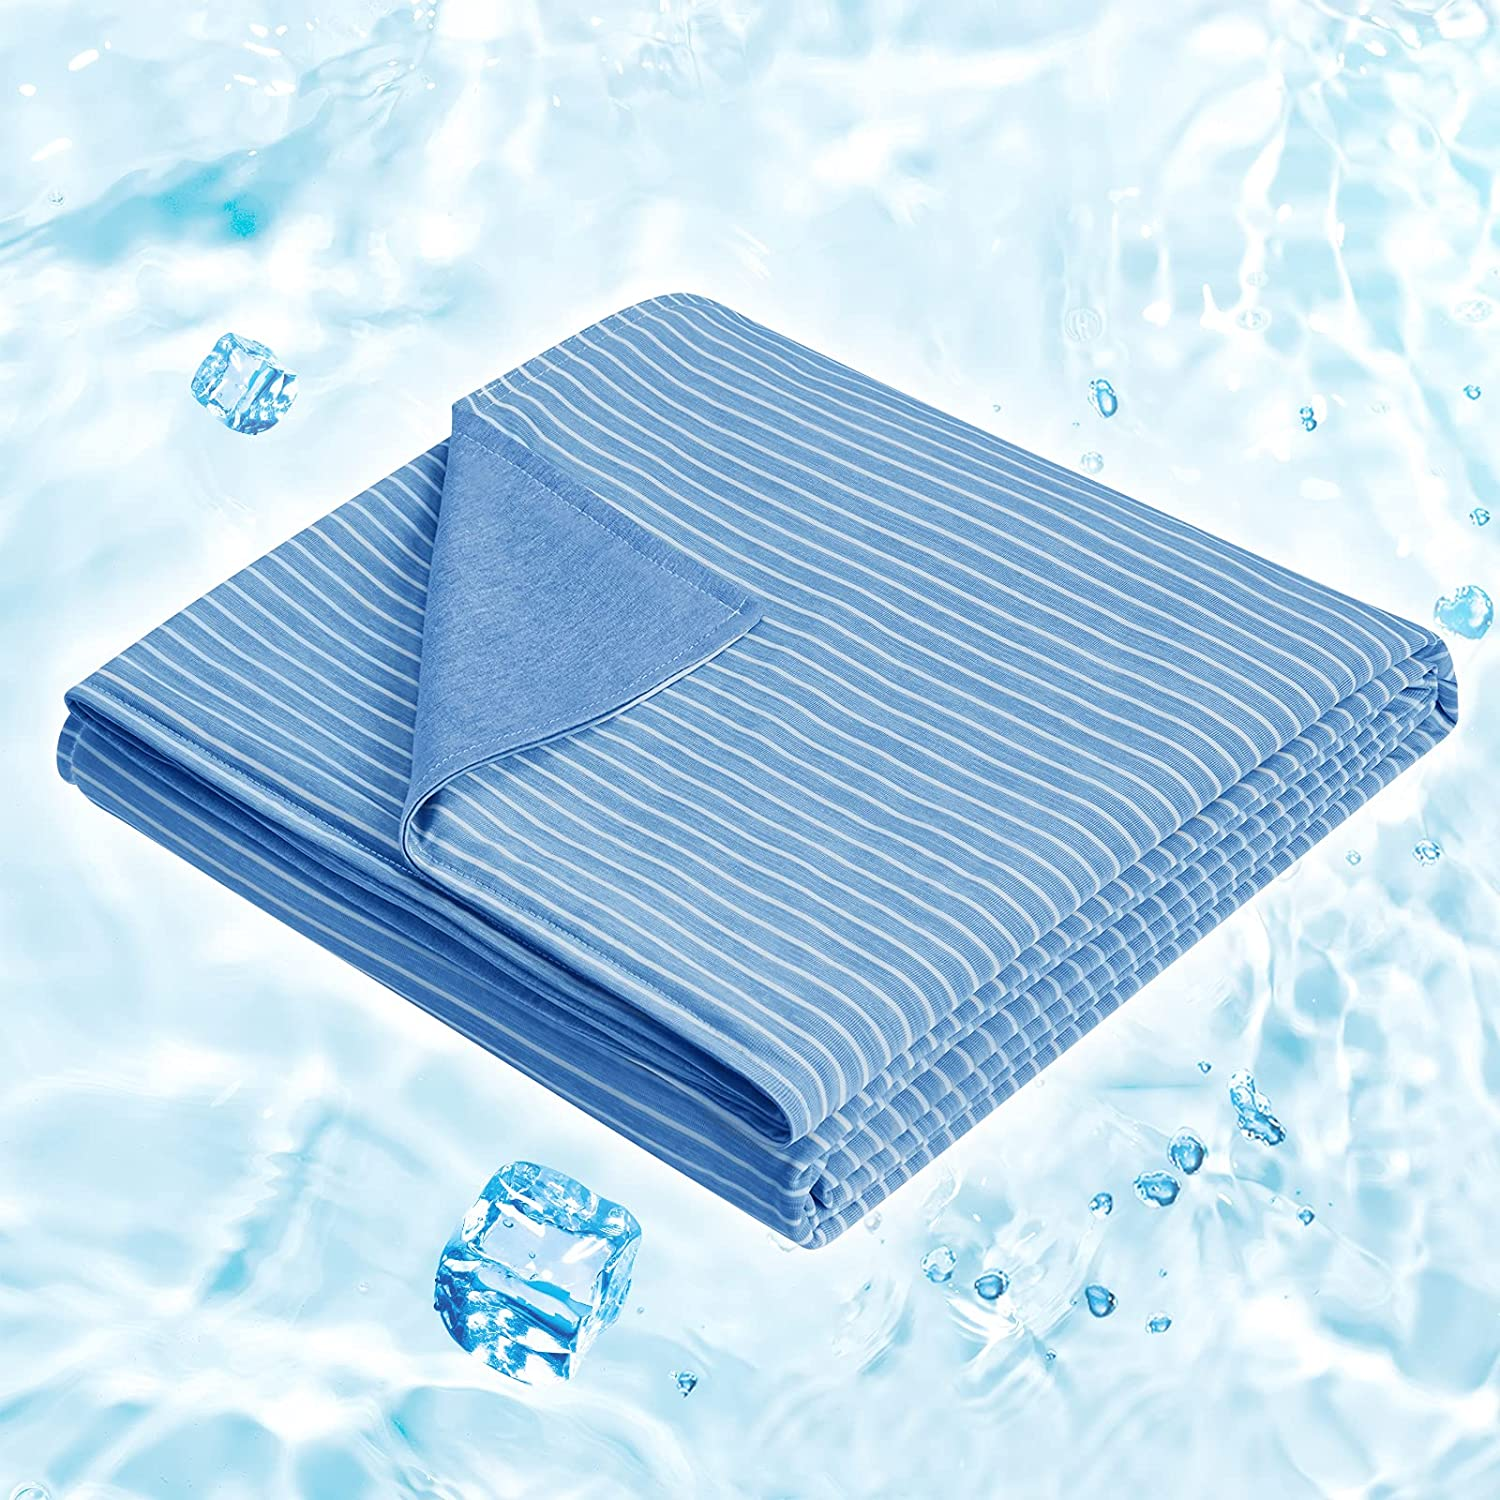 HOMEIDEAS Cooling Blanket Dedication Fresno Mall Twin Size Slee Hot Summer for